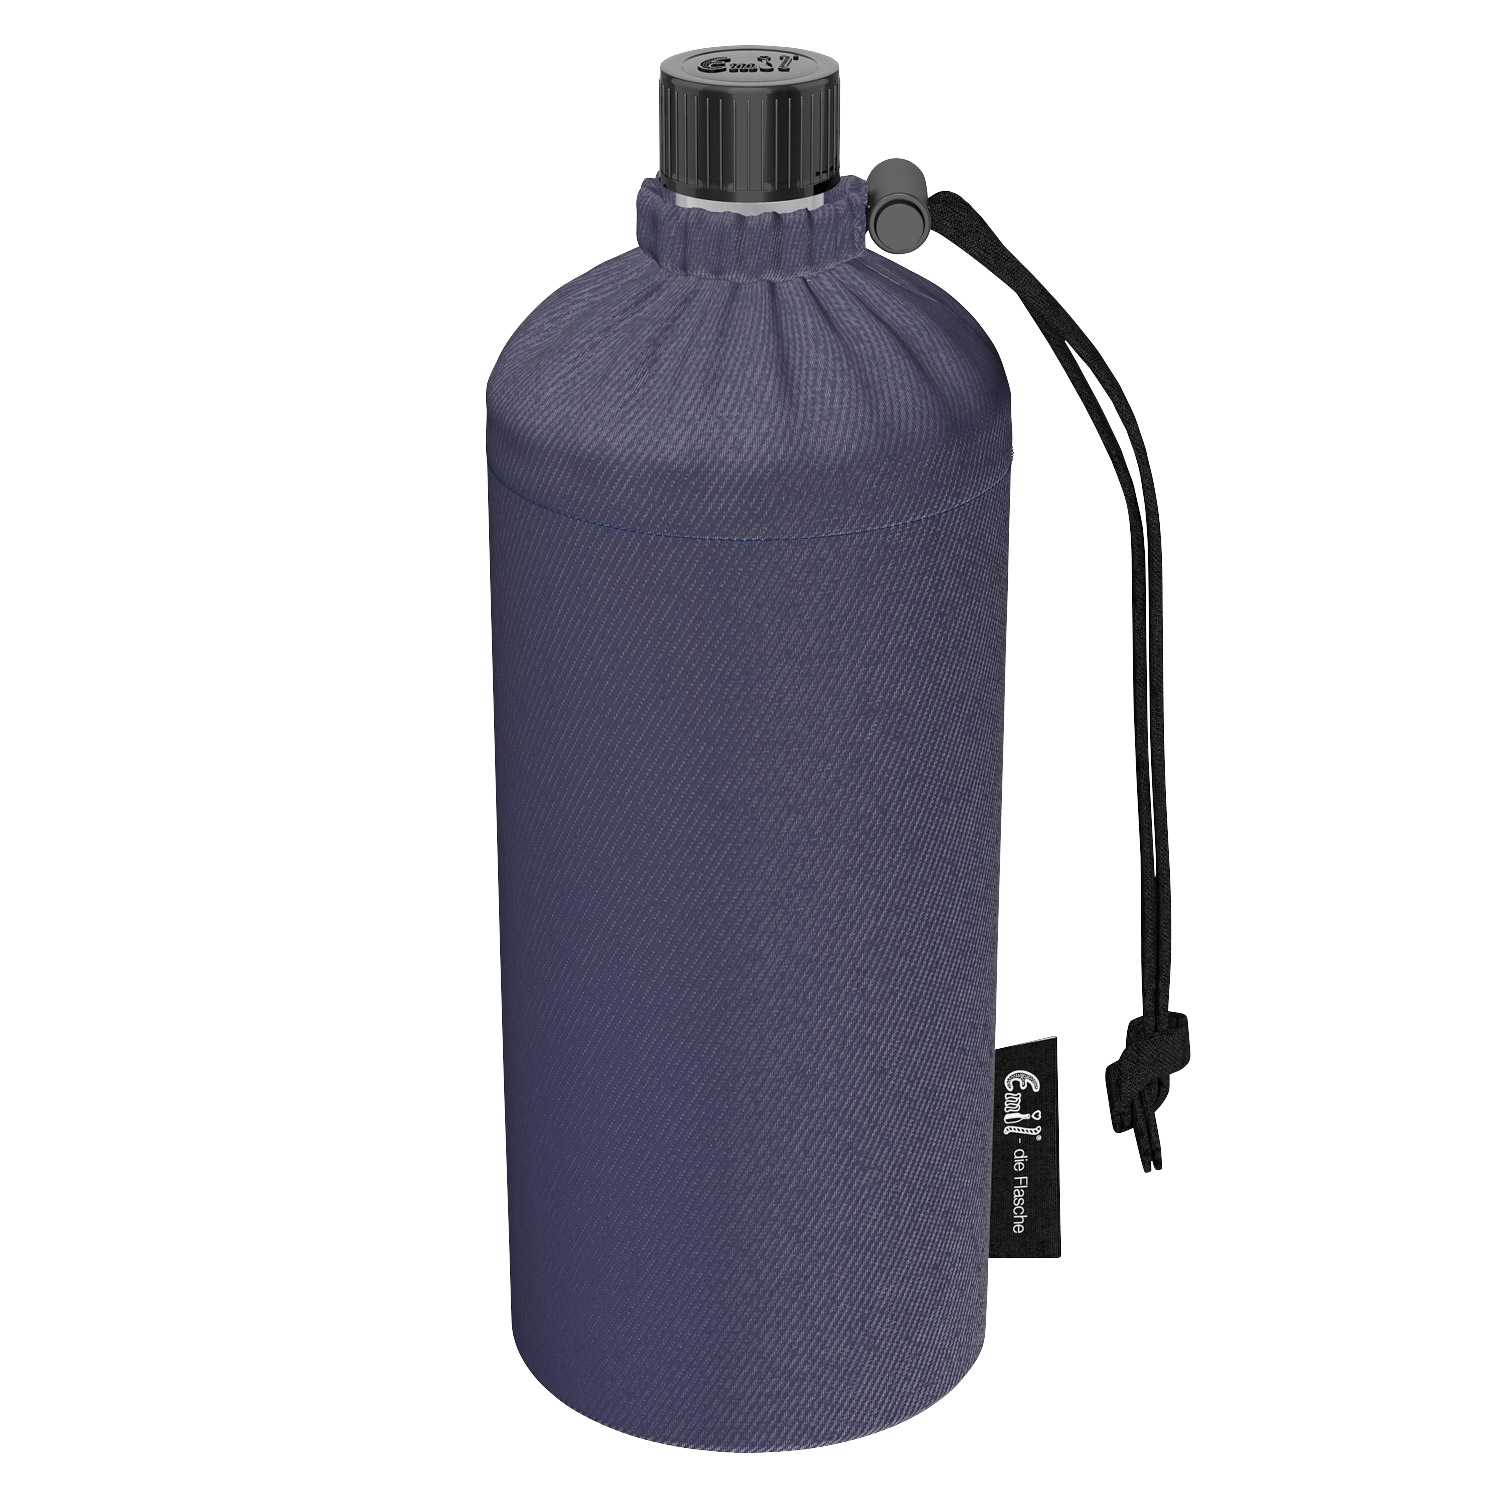 Emil Drinking Dottle with Sleeve made of Organic Cotton Jeans  0.6 l